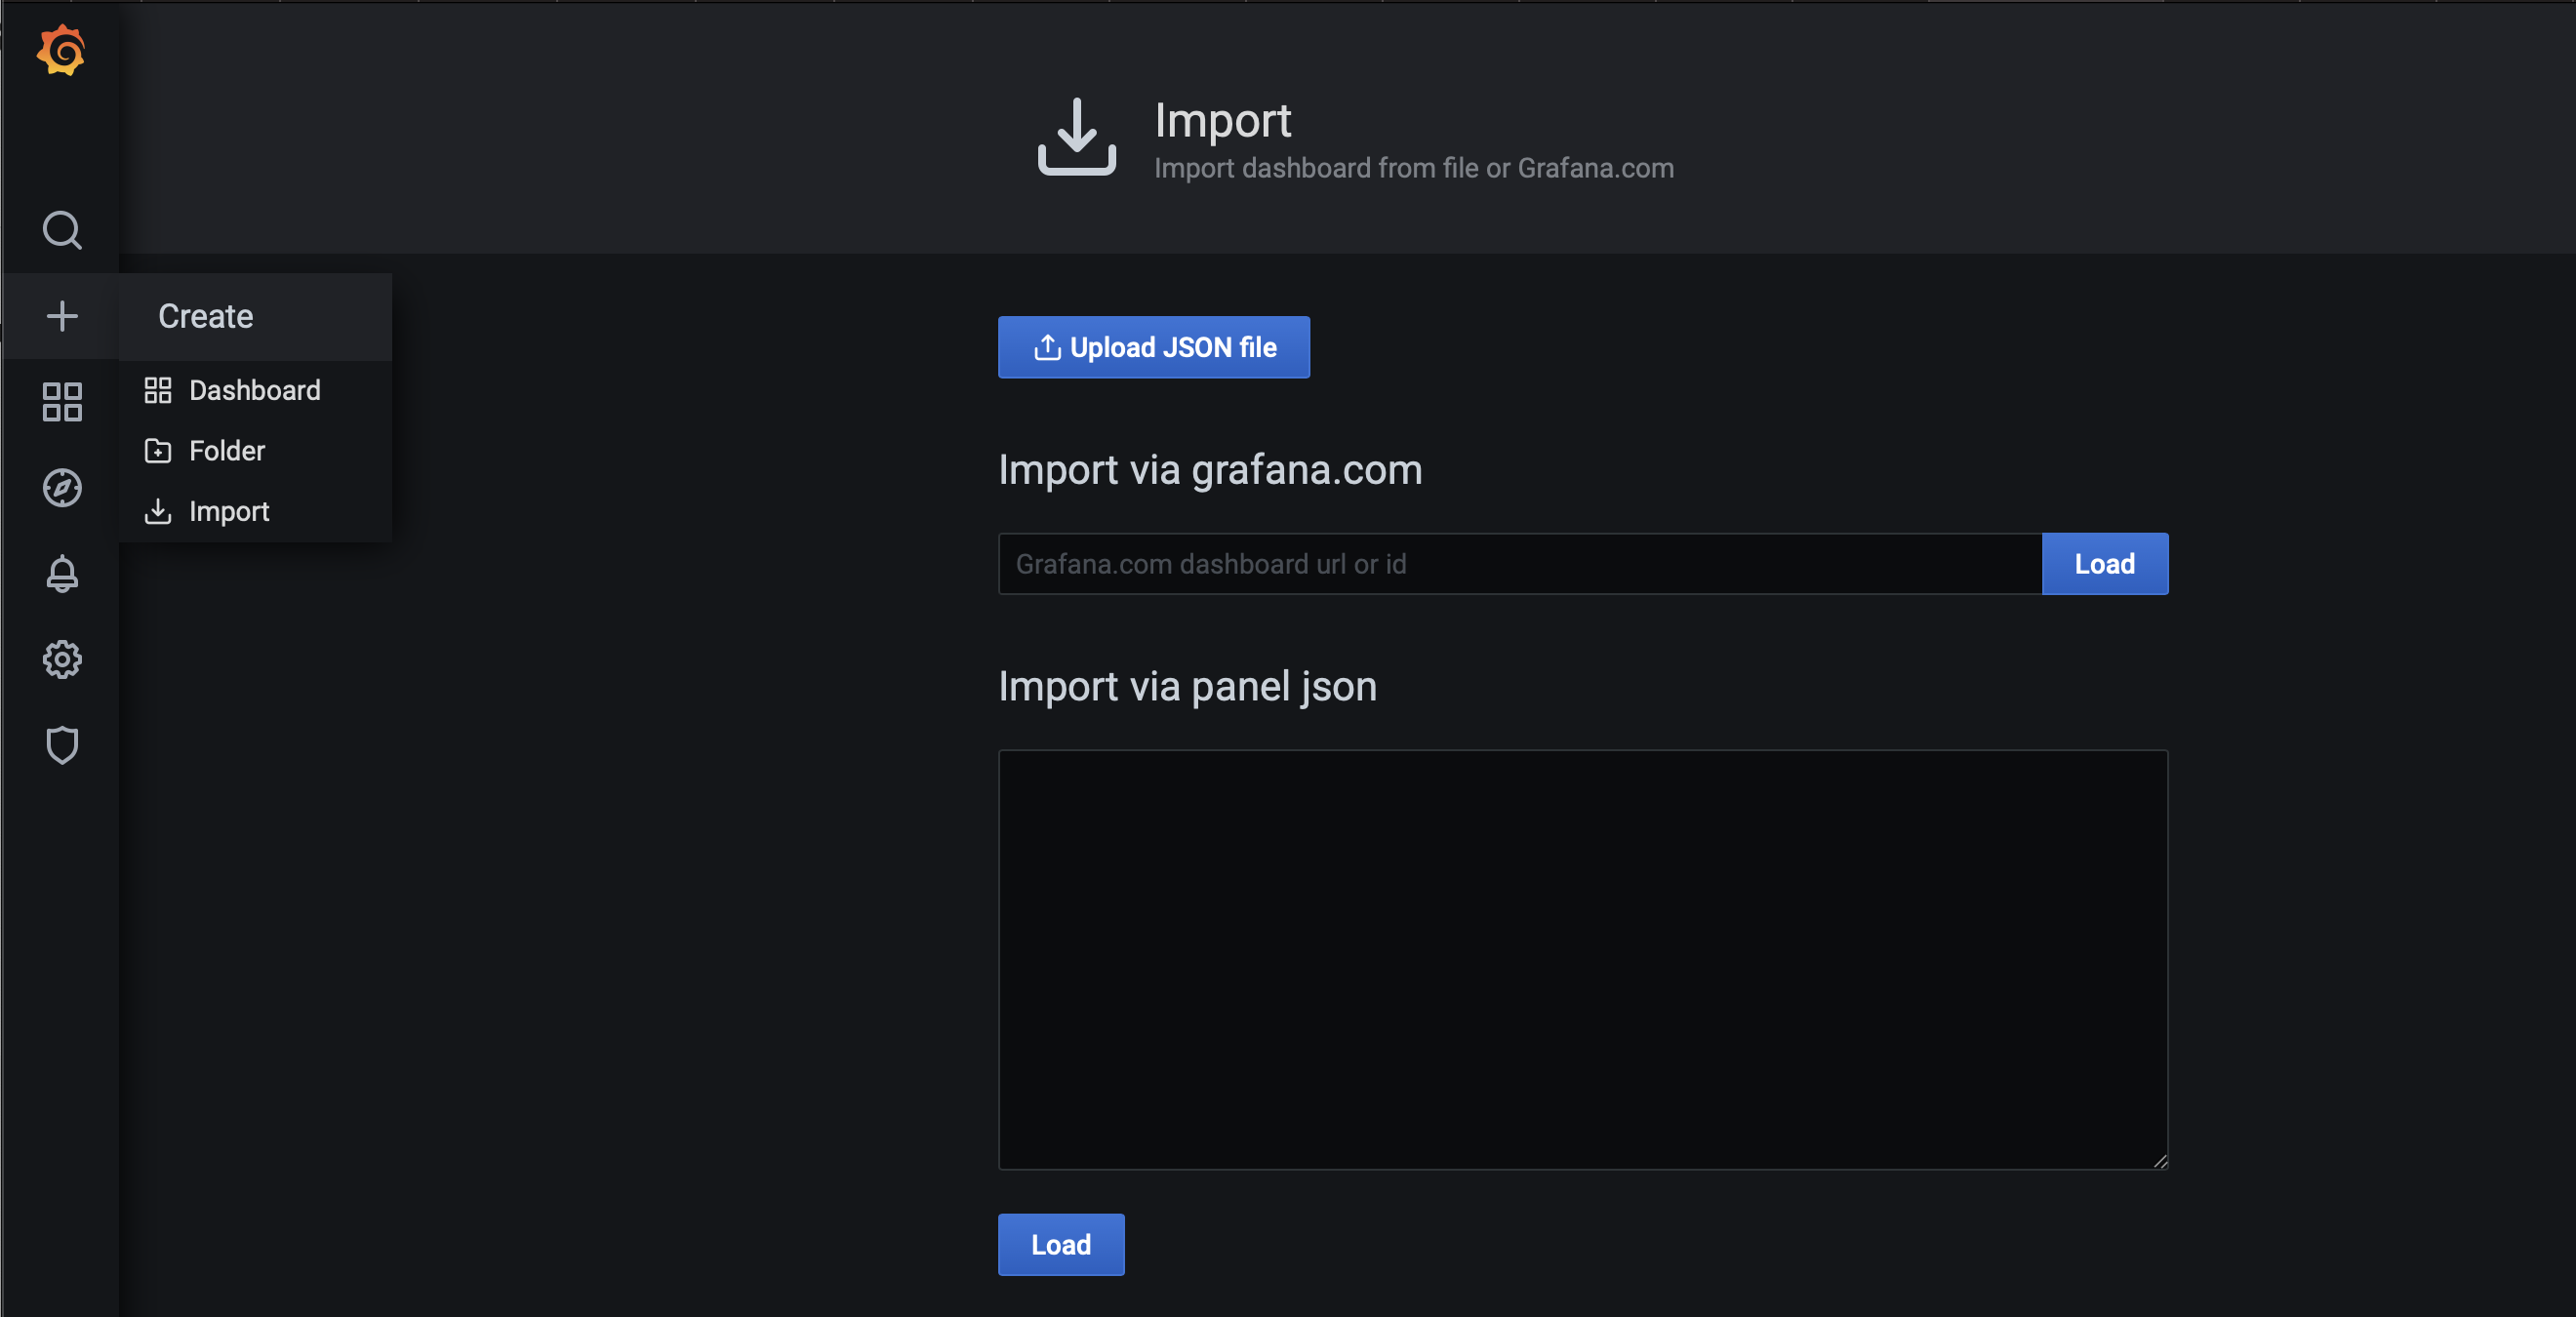 Entering your dashboard ID for Import